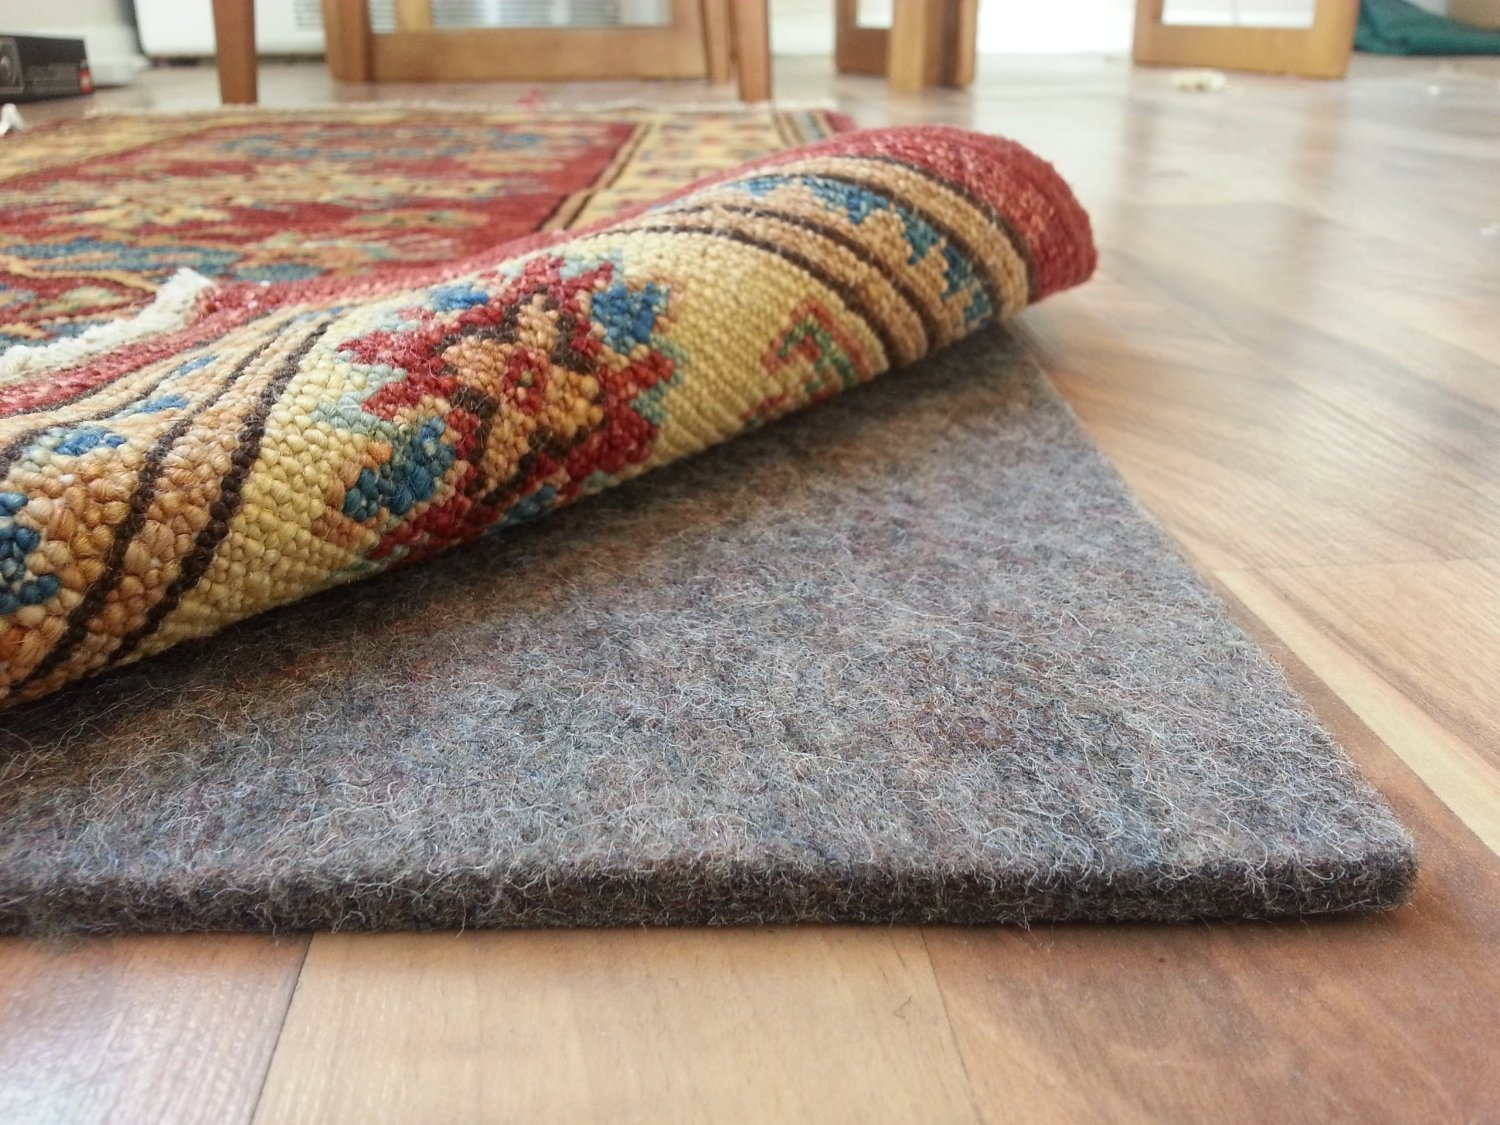 Amazon.com: 6x9 Natural Comfort (TM) Eco-Friendly Felt Rug Pad: Home &  Kitchen - Amazon.com: 6x9 Natural Comfort (TM) Eco-Friendly Felt Rug Pad